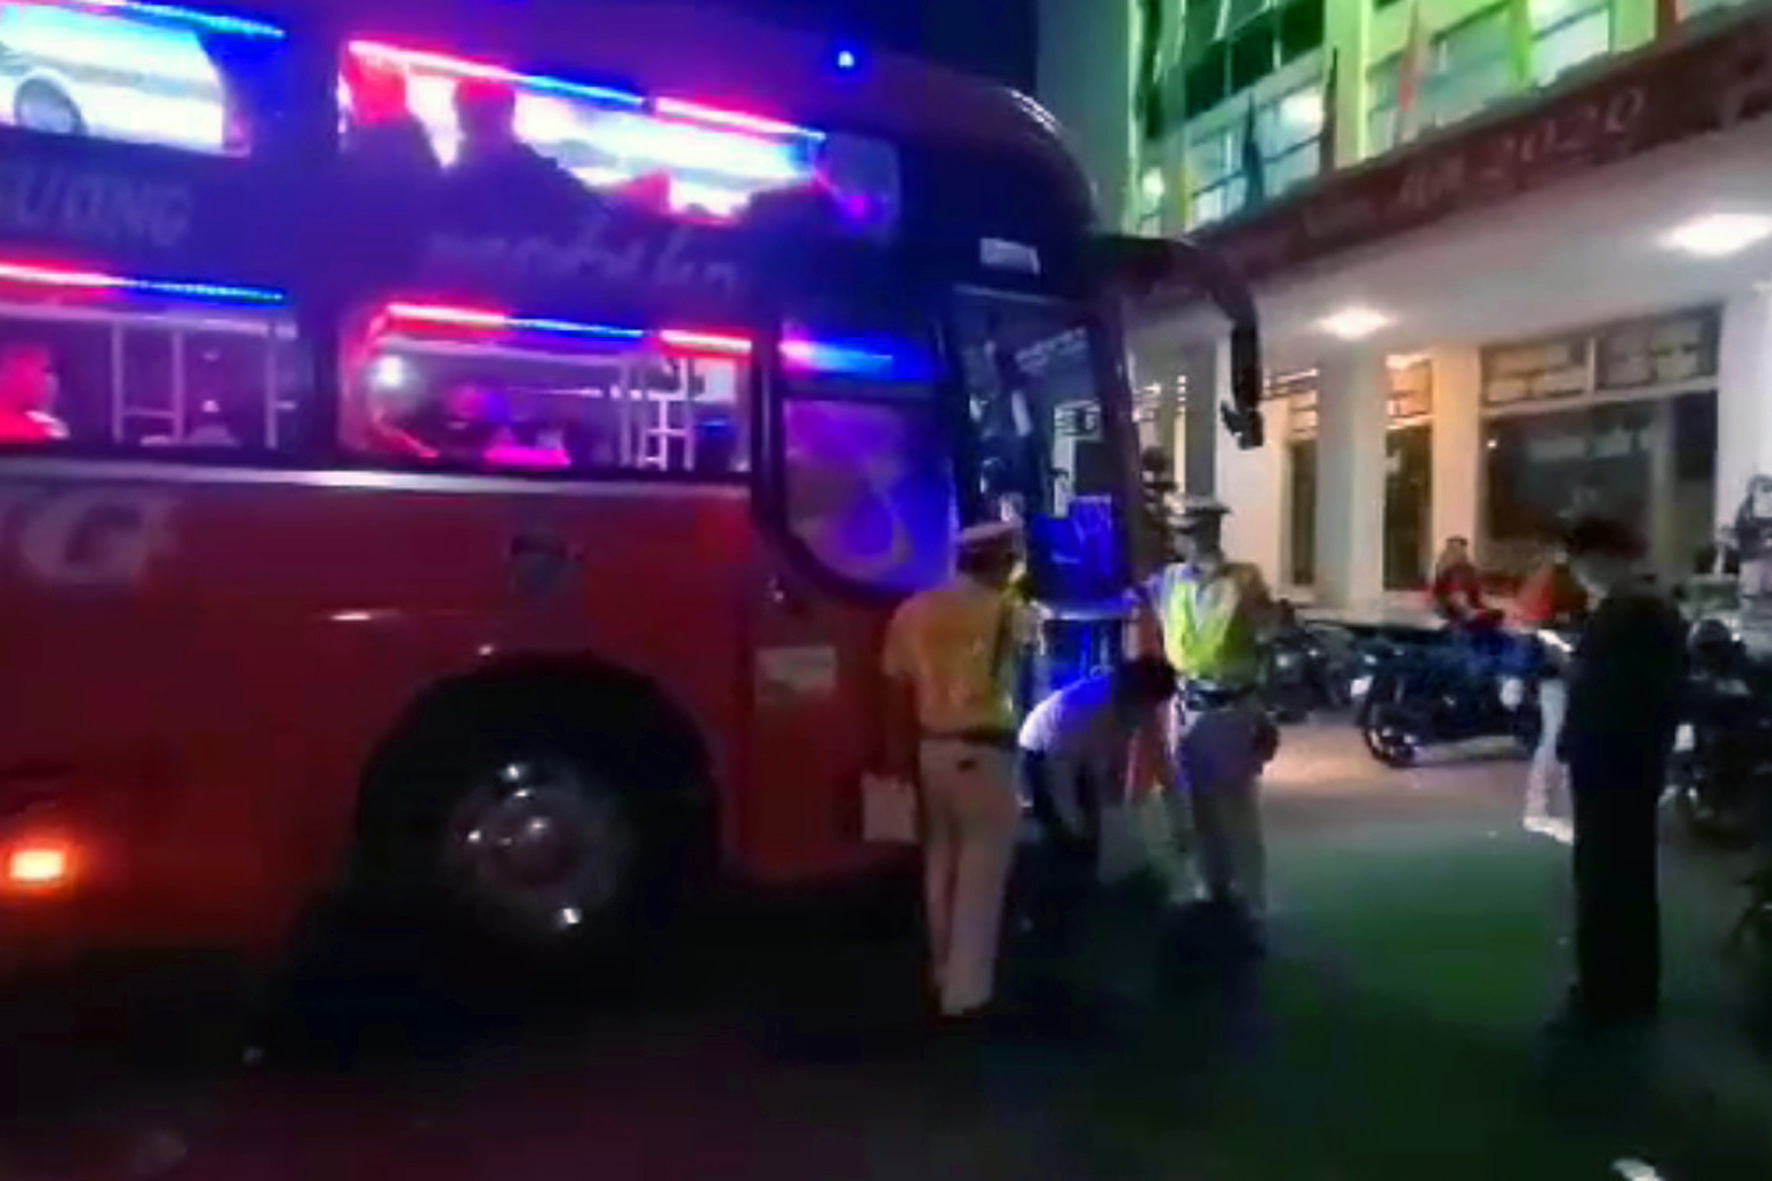 A passenger bus packed with people is caught by traffic police officers in Dong Nai Province, Vietnam, January 19, 2020. Photo: B.A. / Tuoi Tre